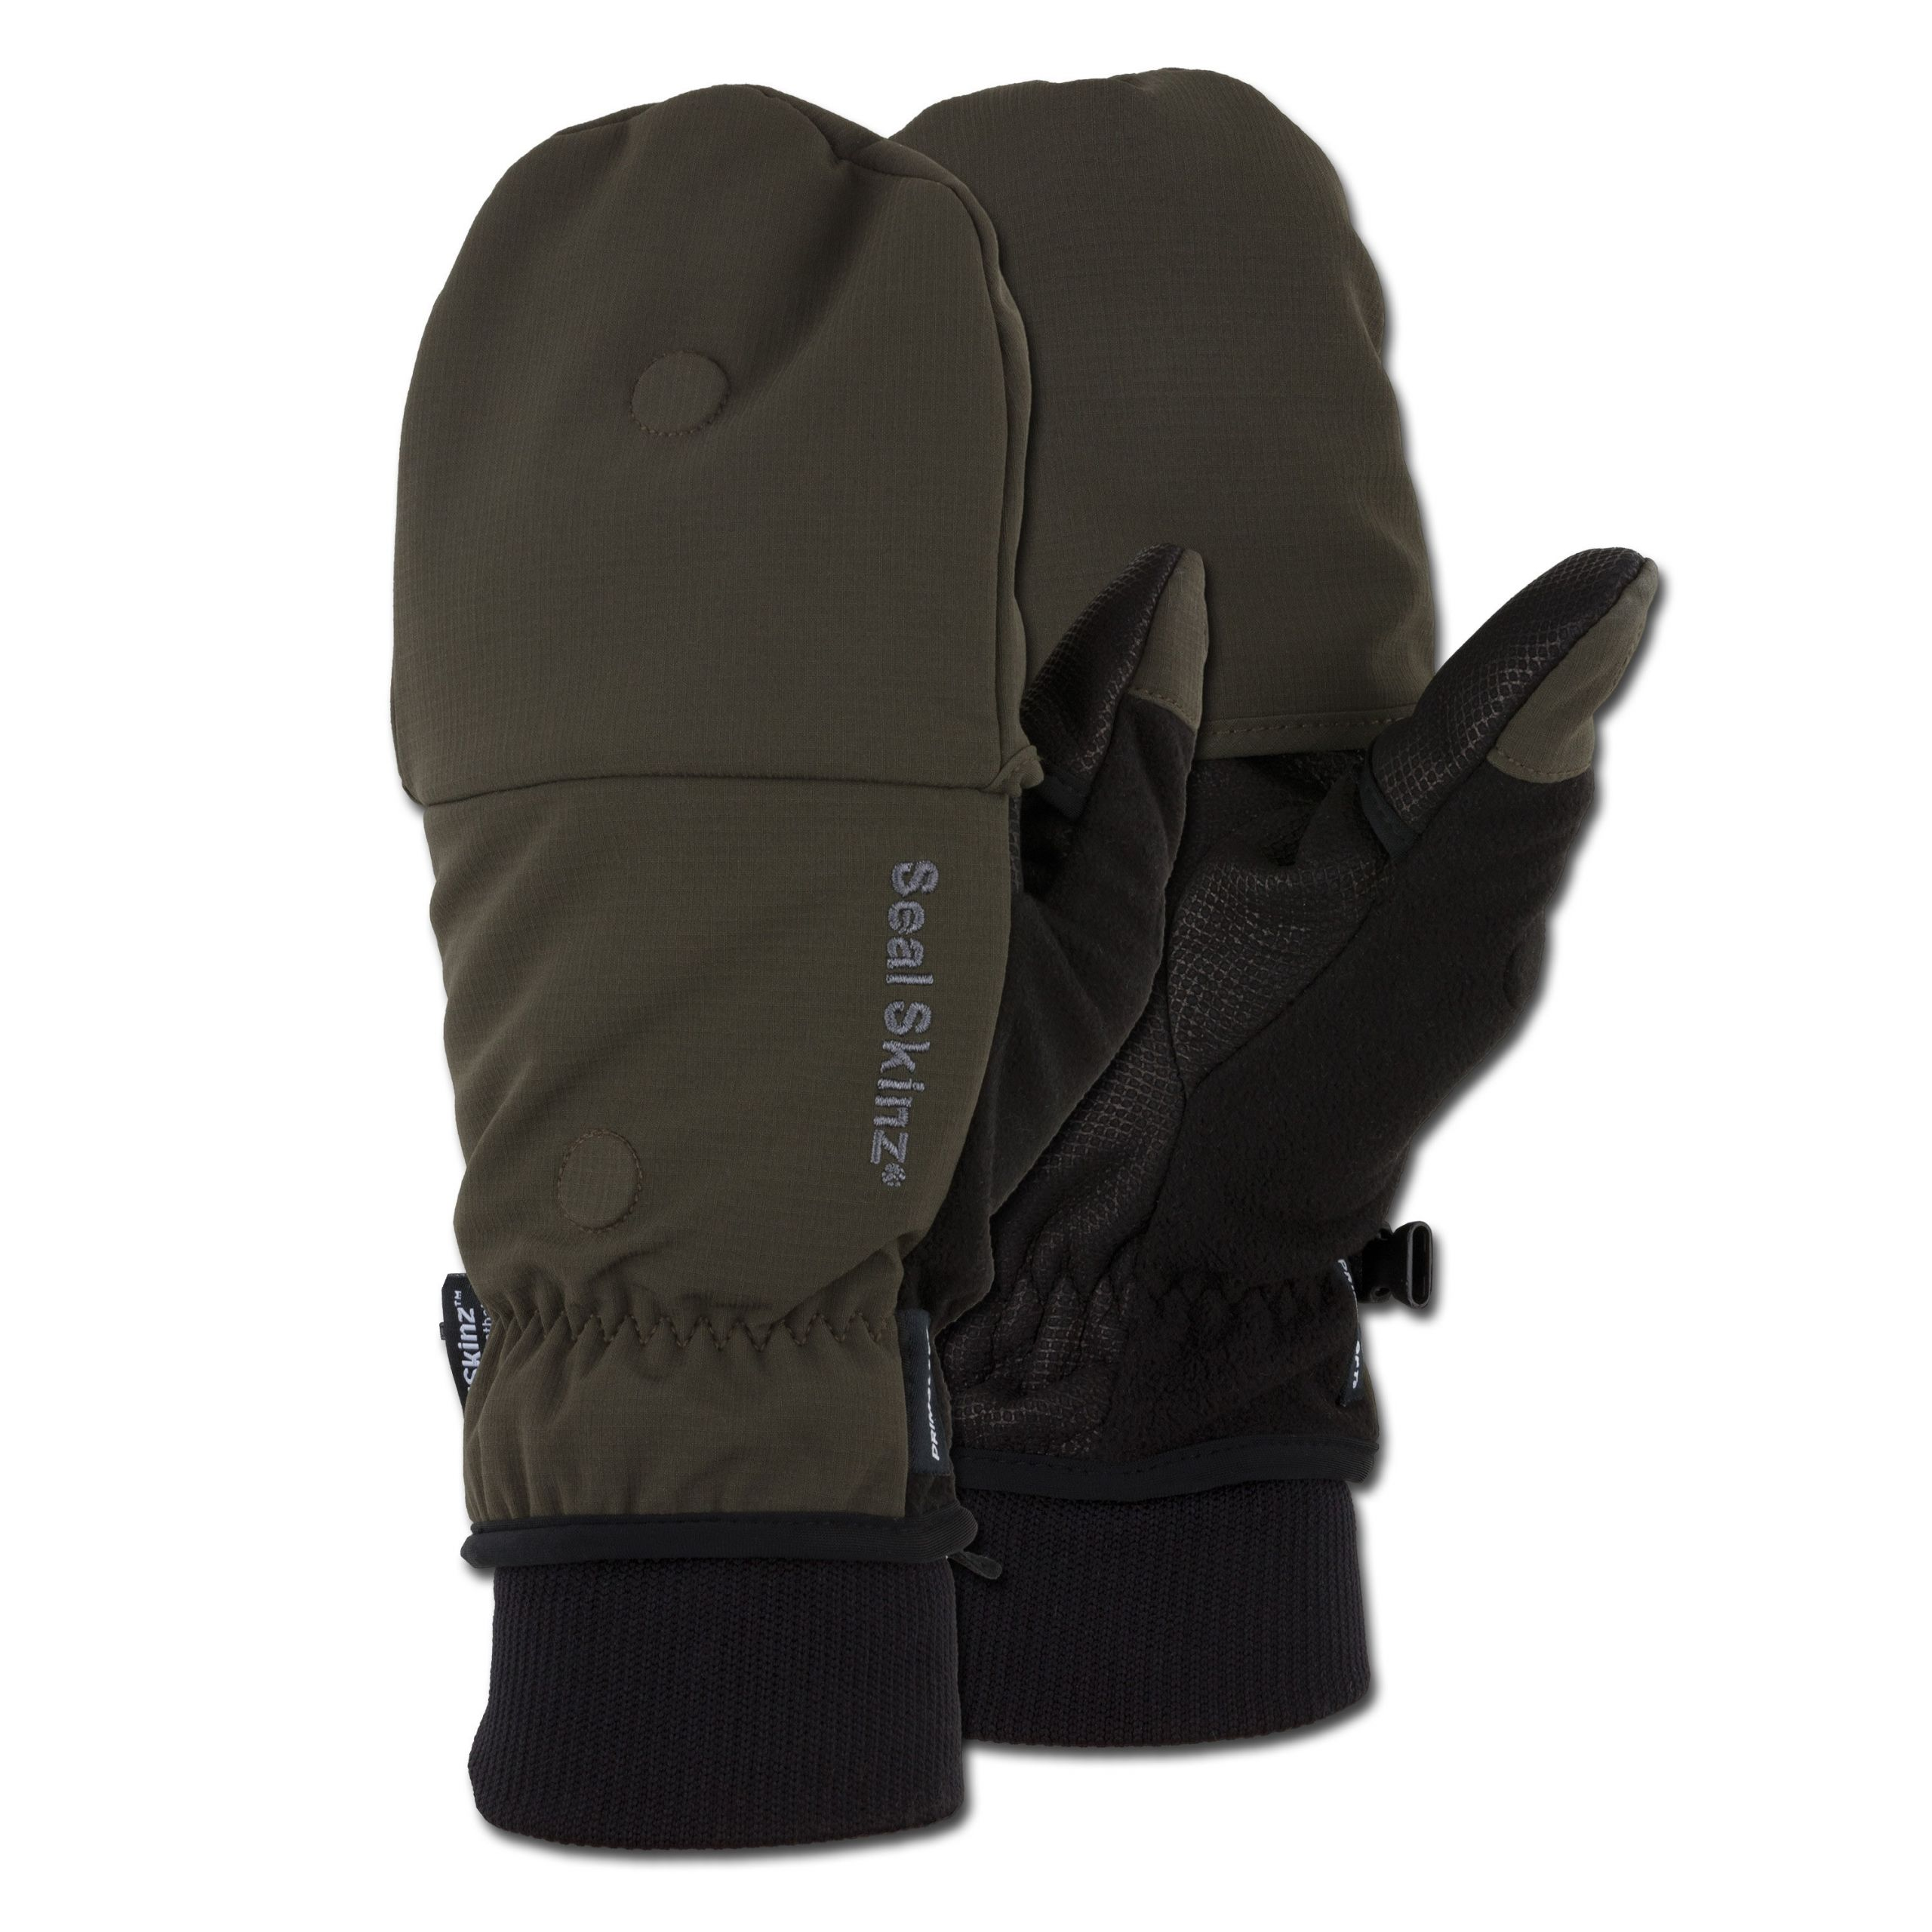 Sealskinz Mens Outdoor Sports Mitten Gloves